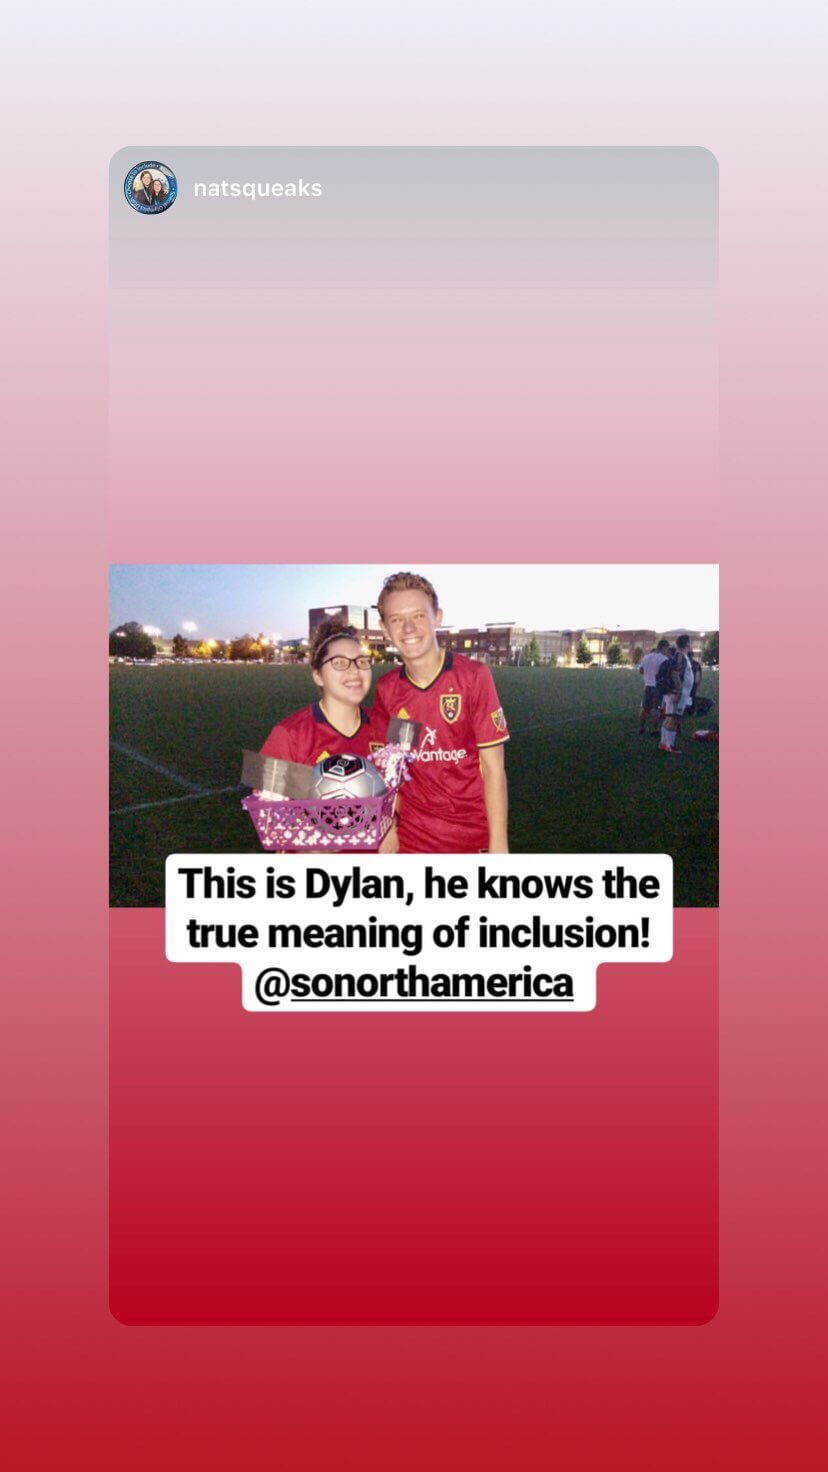 Picture of Natalie from Utah and her friend Dylan and a soccer game.